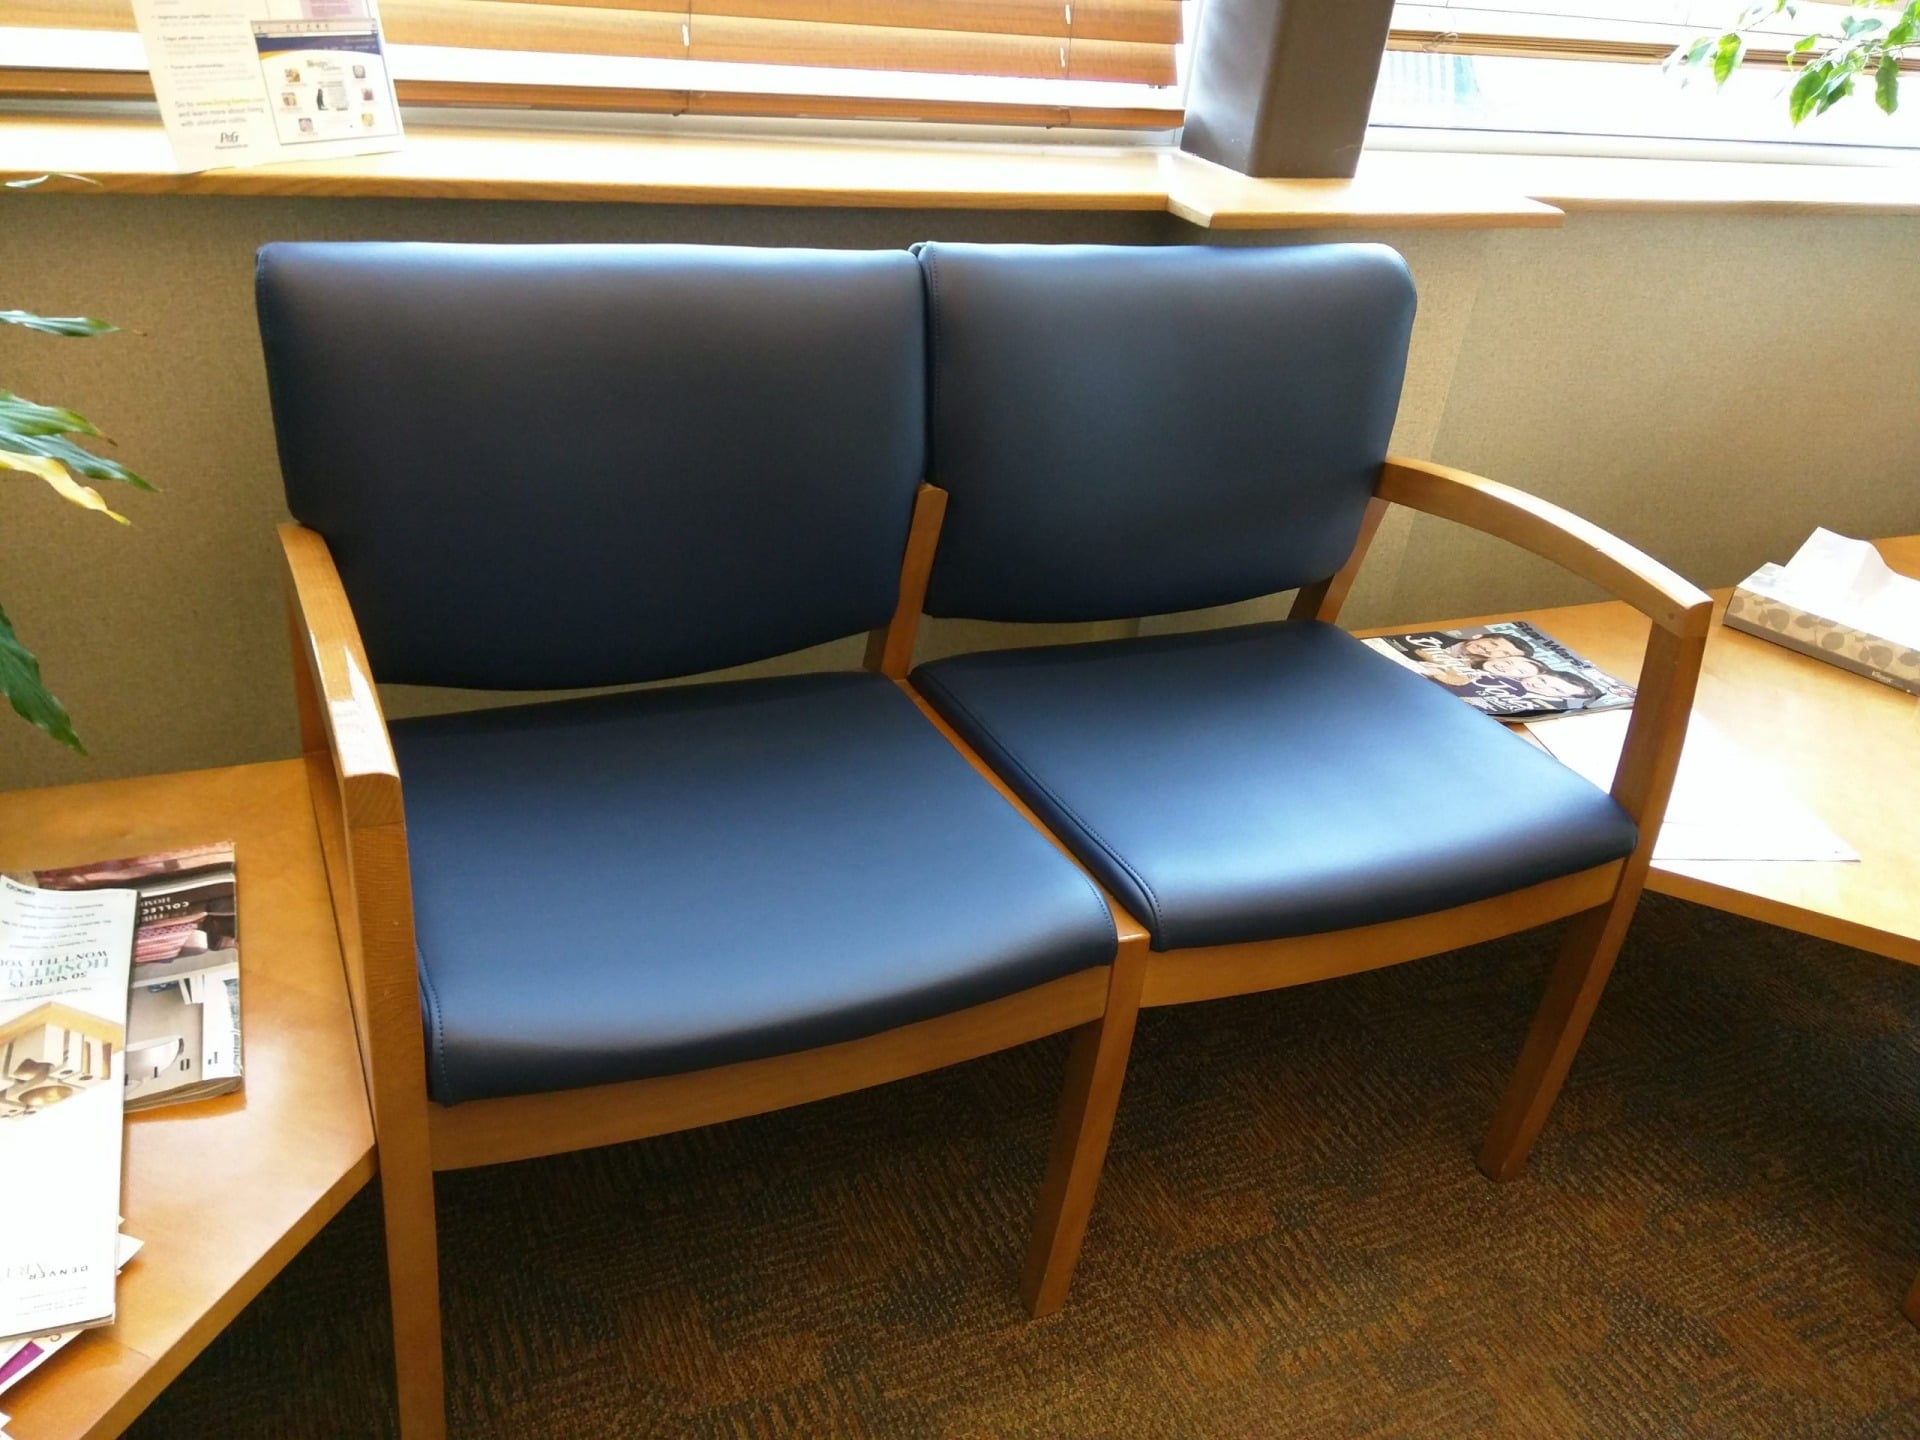 Waiting Room Lobby Chair Double Seat Section Reupholstered in Olympus Majestic